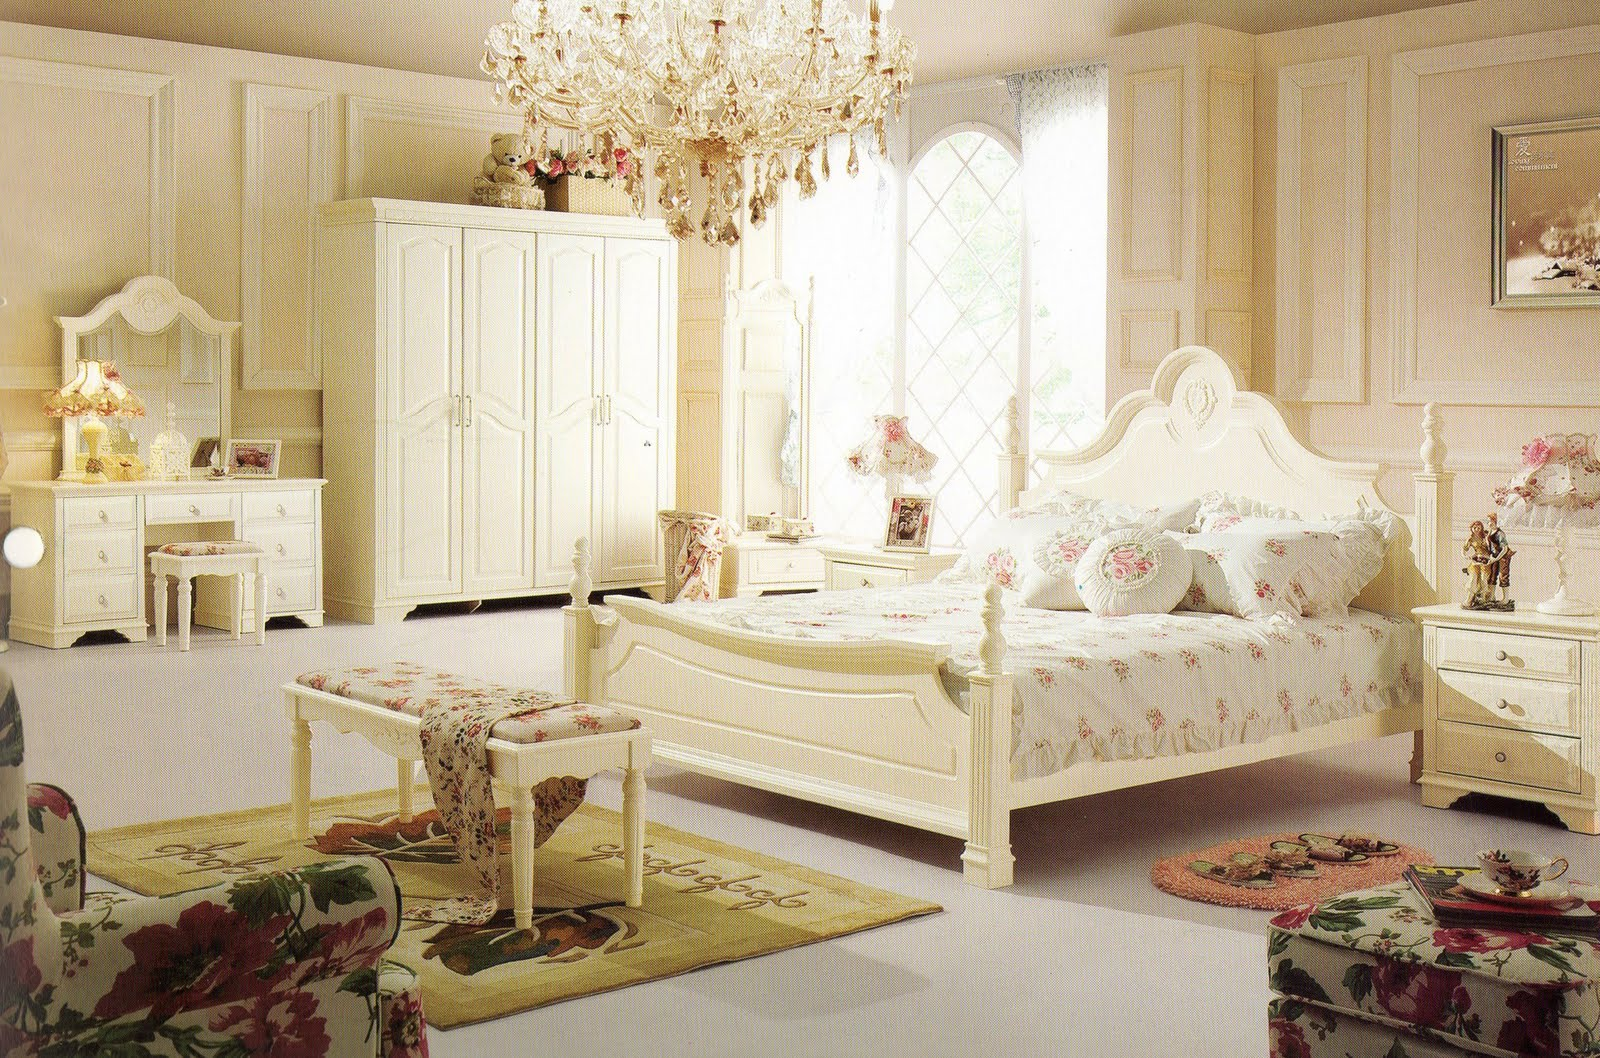 Fsd new arrival of our beautiful and elegant french style for Pretty room decor